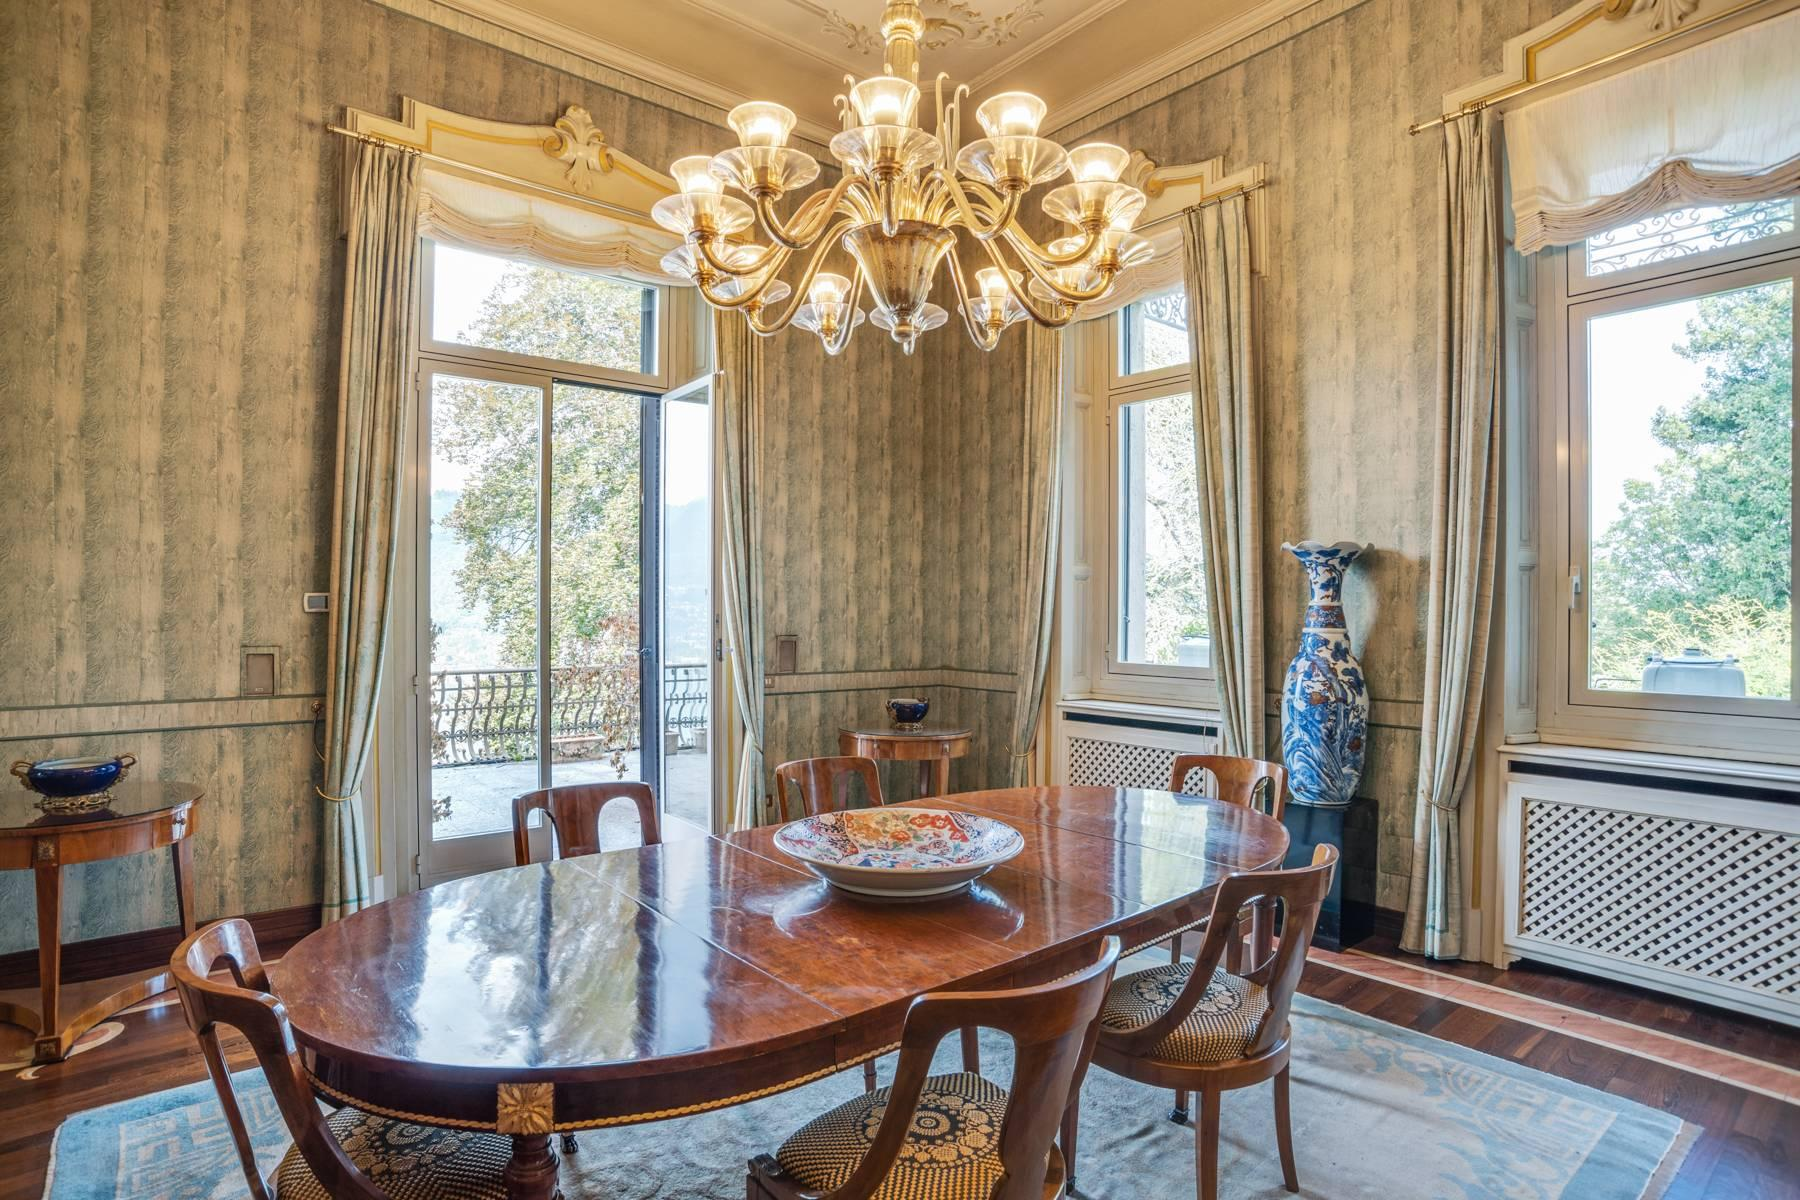 Fascinating apartment in an exclusive villa of the early 1900s - 25